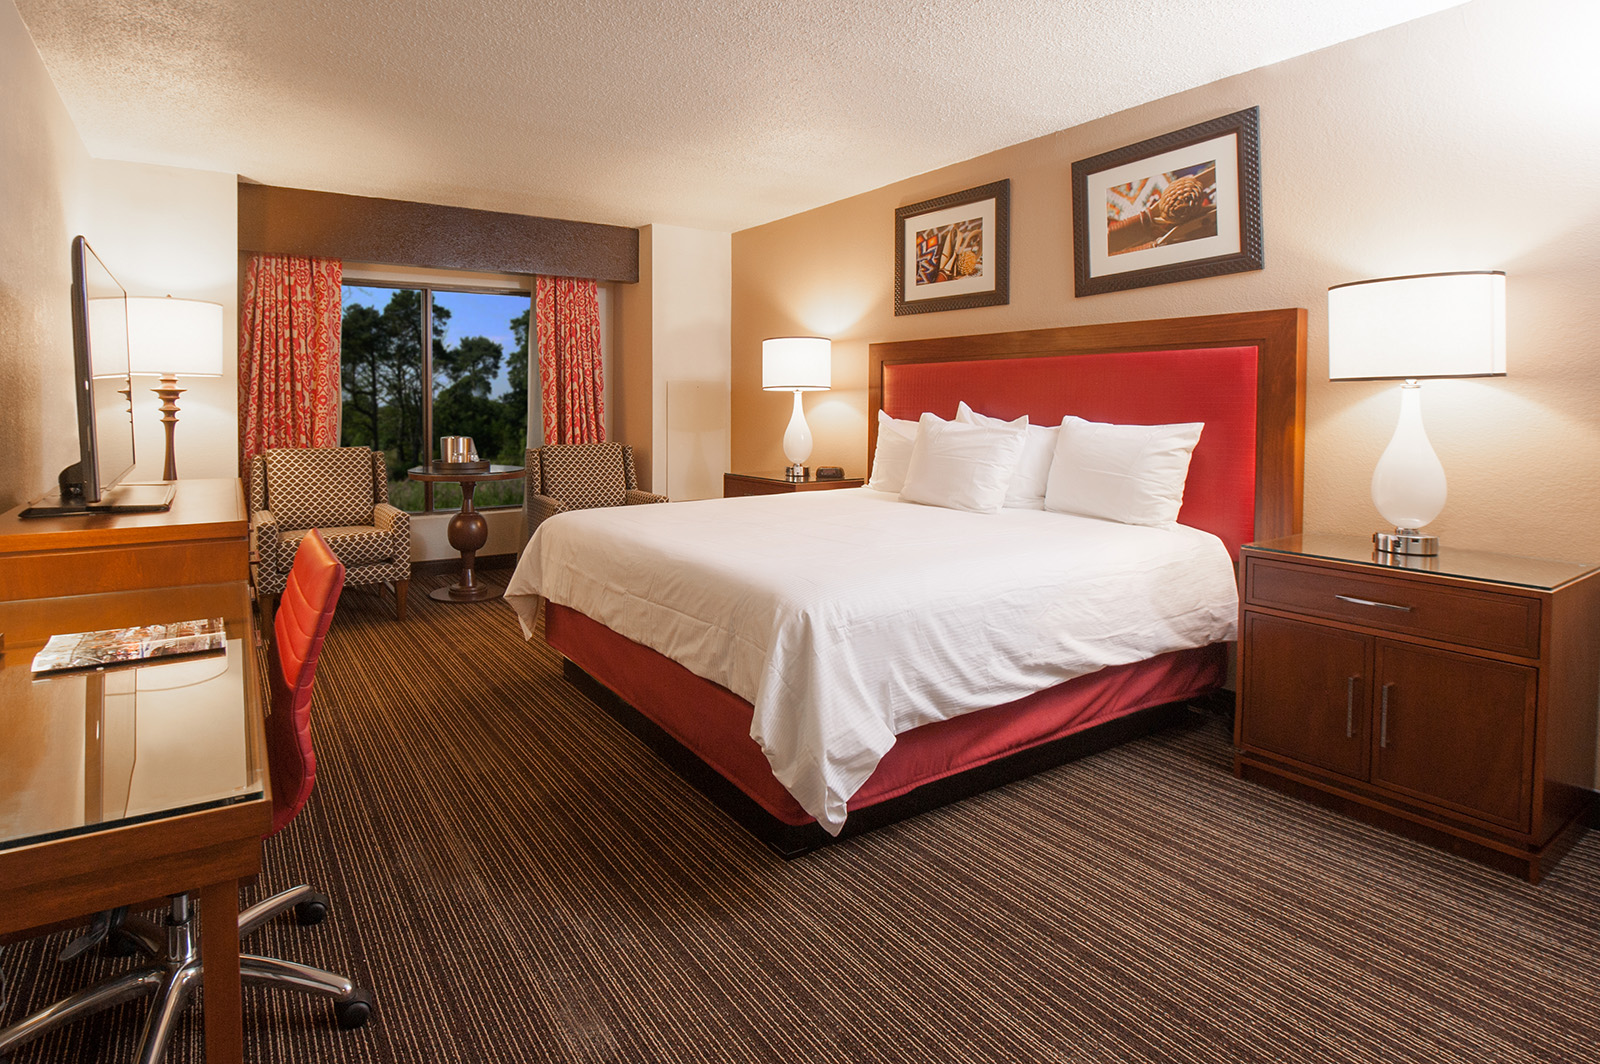 5 Things To Remember When Looking For Hotels In Brenham